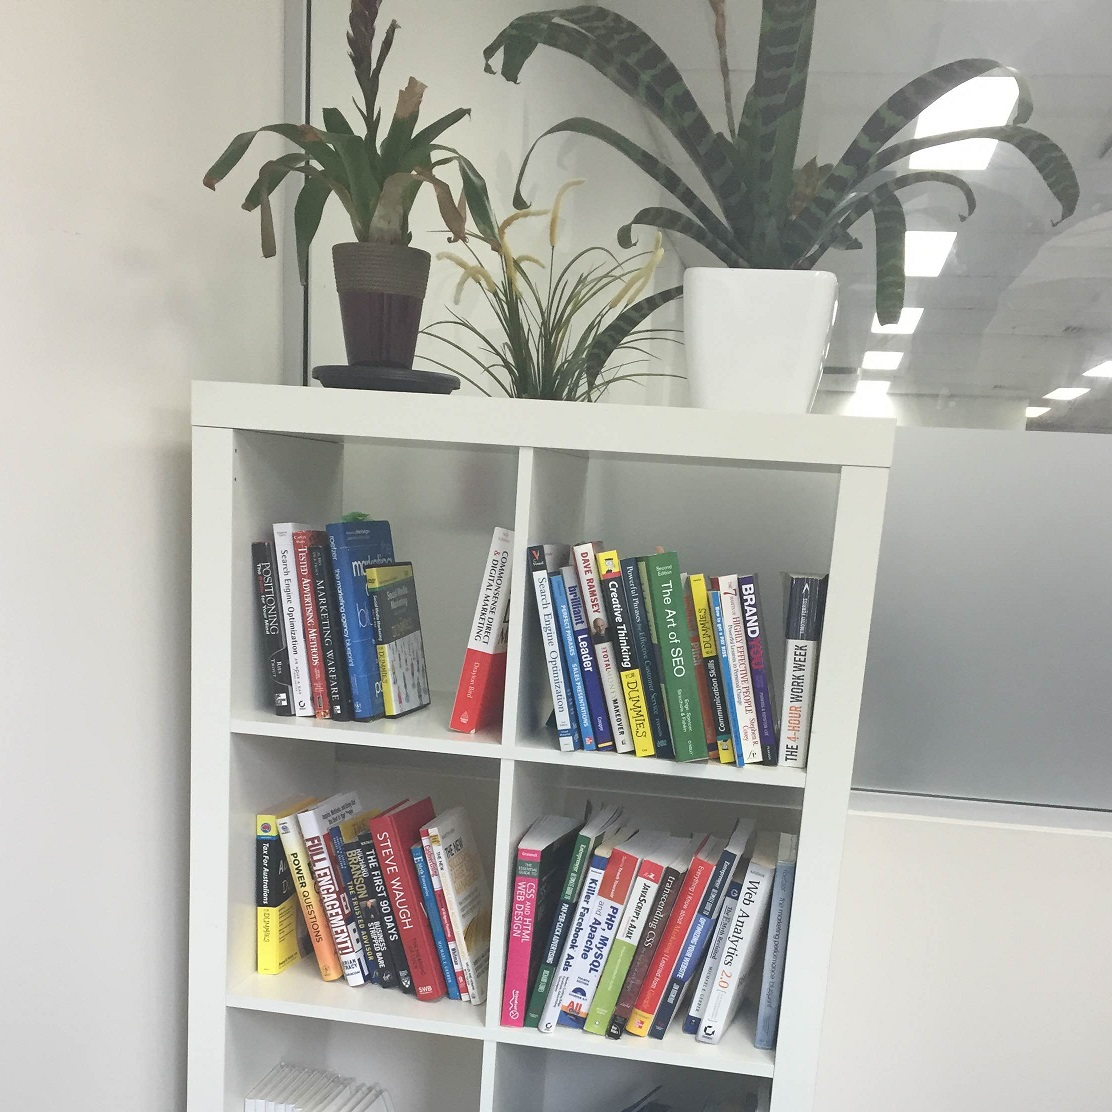 Reef book library